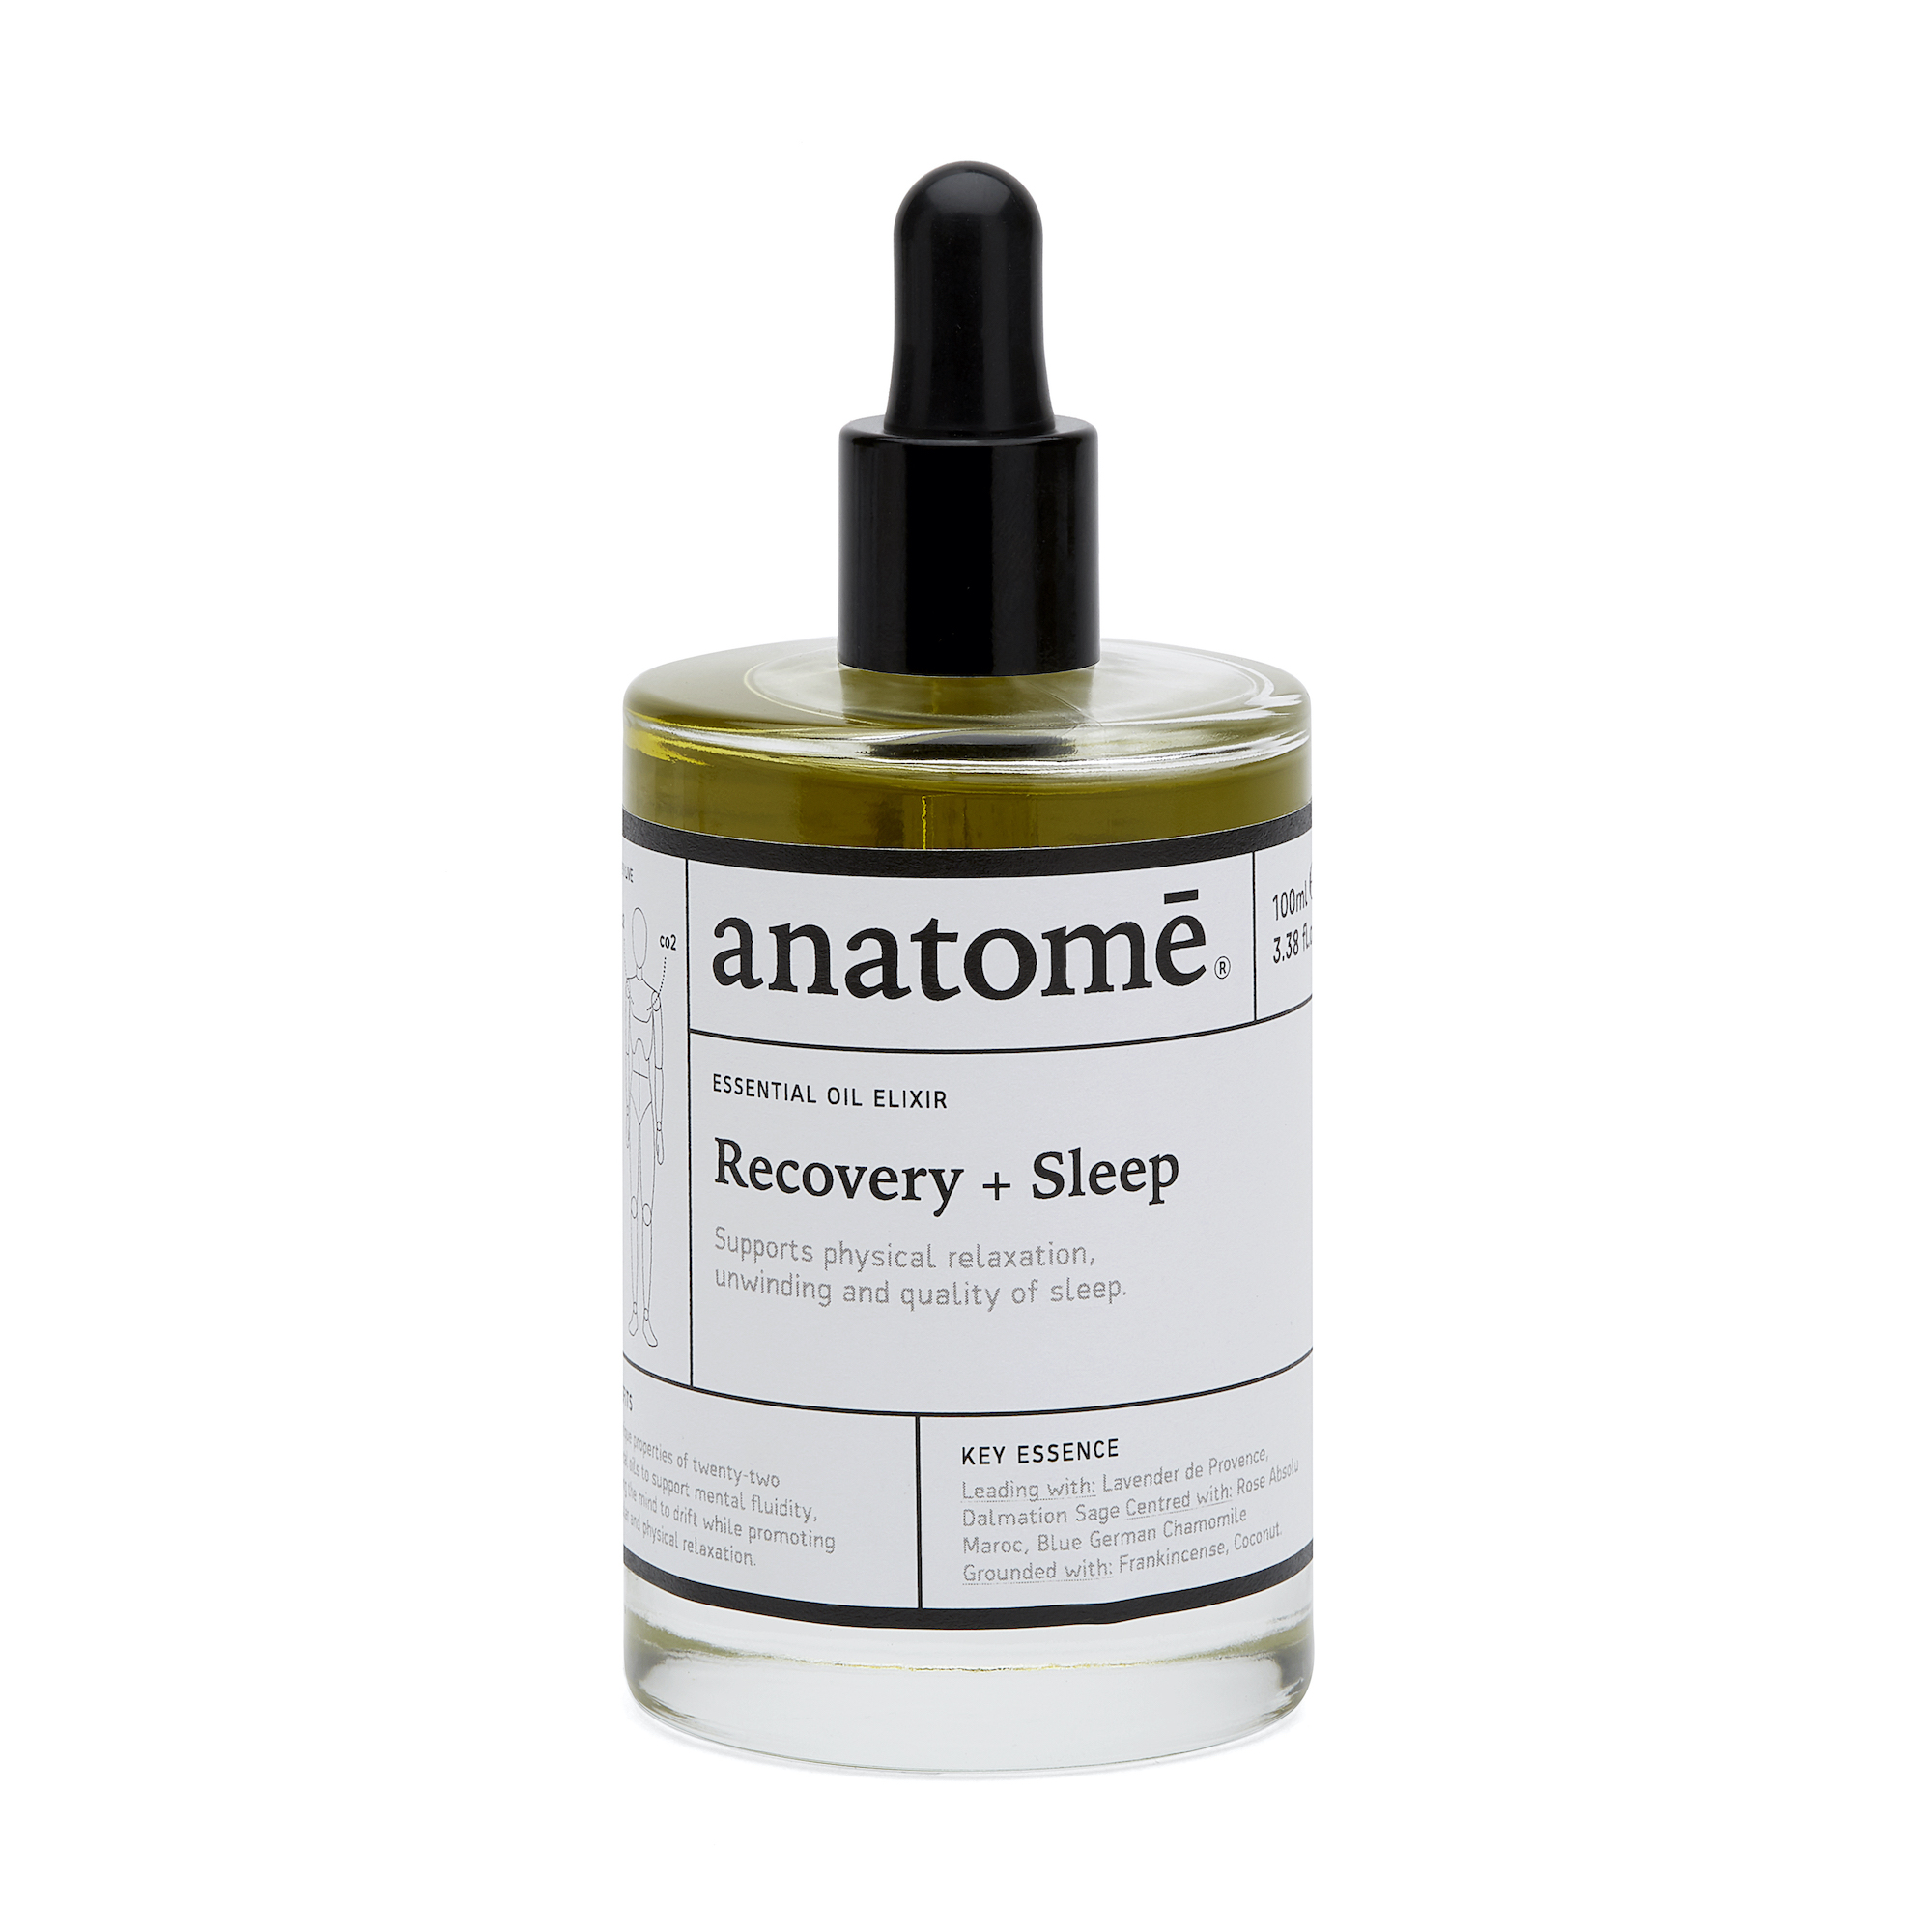 reset, relax + sleep is the new product by nourishment brand anatome